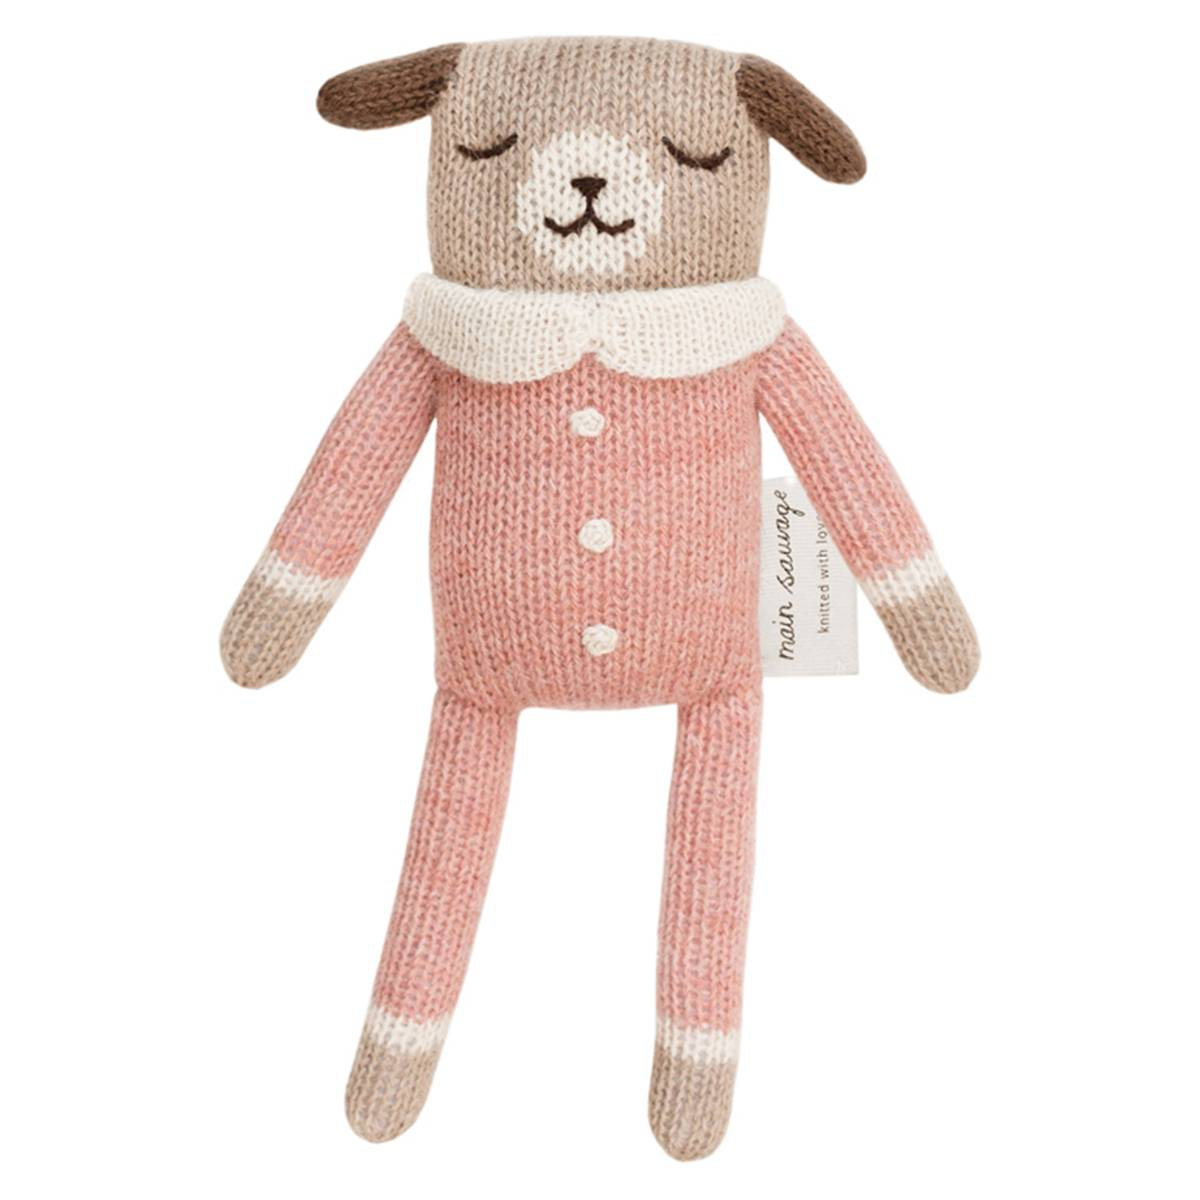 Main Sauvage Doudou Chien - Rose